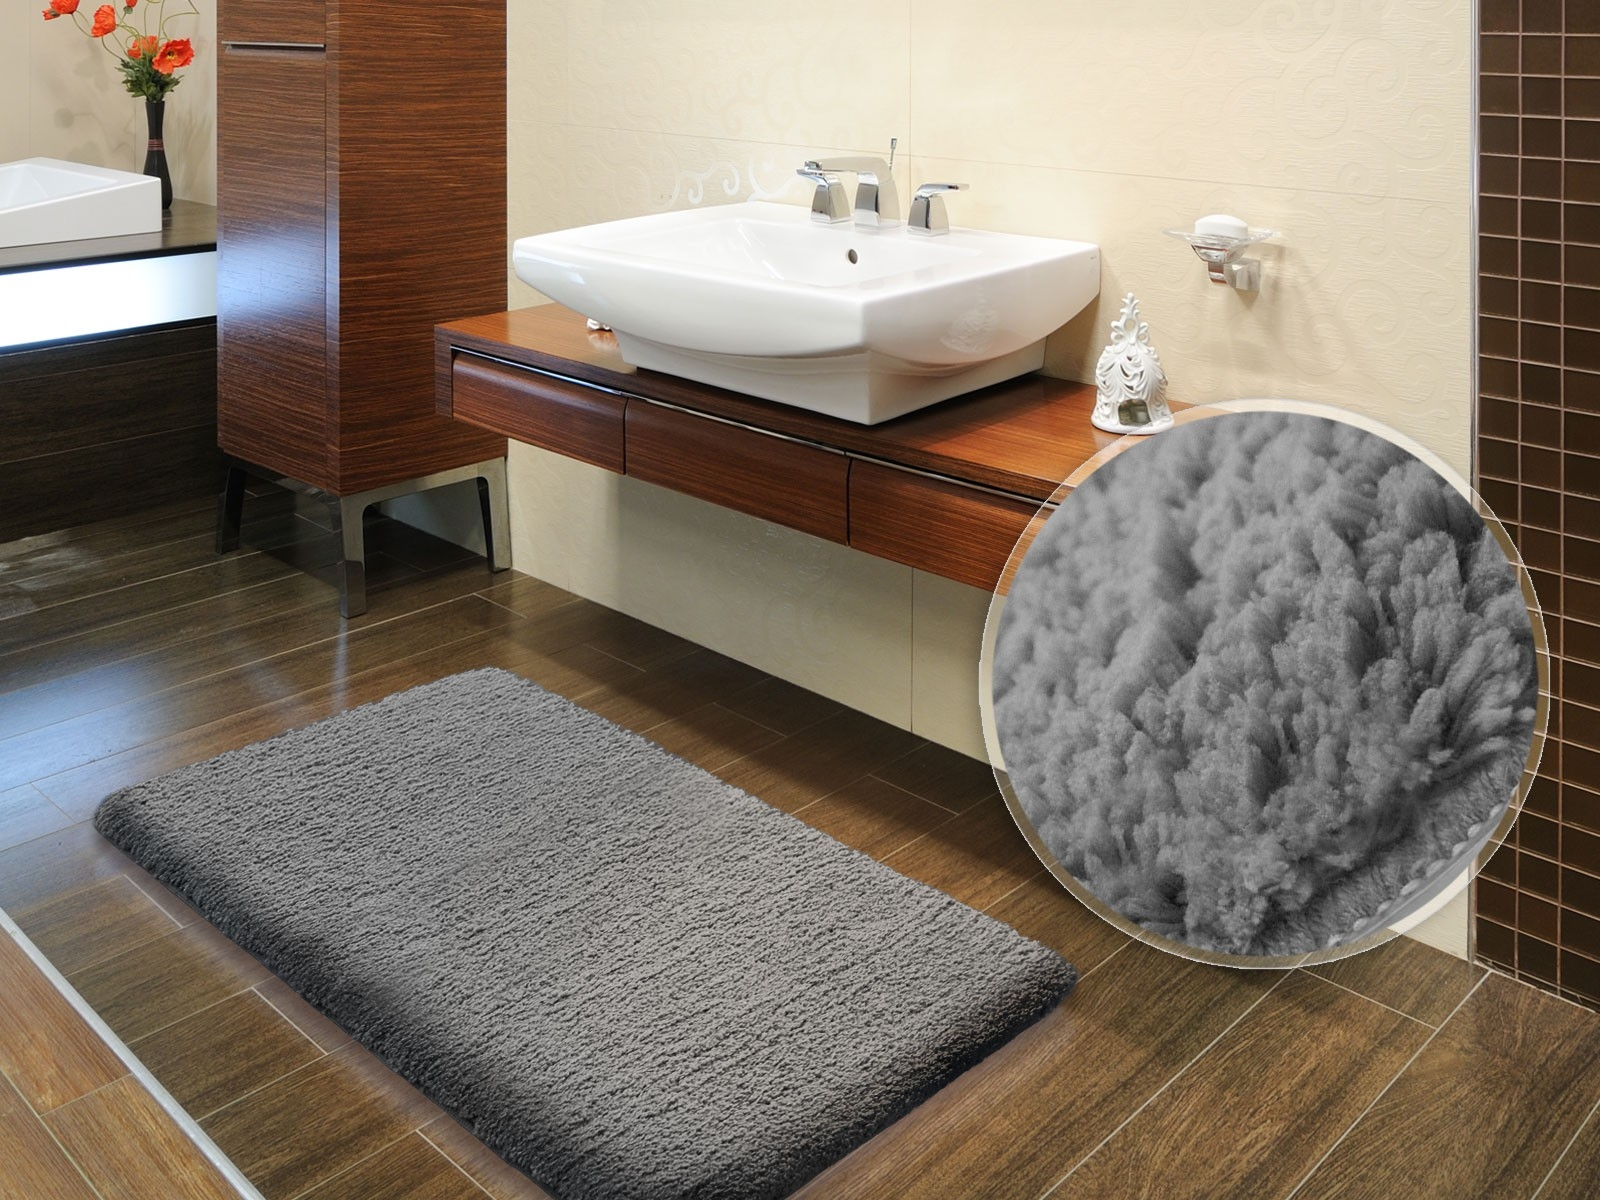 Extra Large Rubber Backed Bath Mats